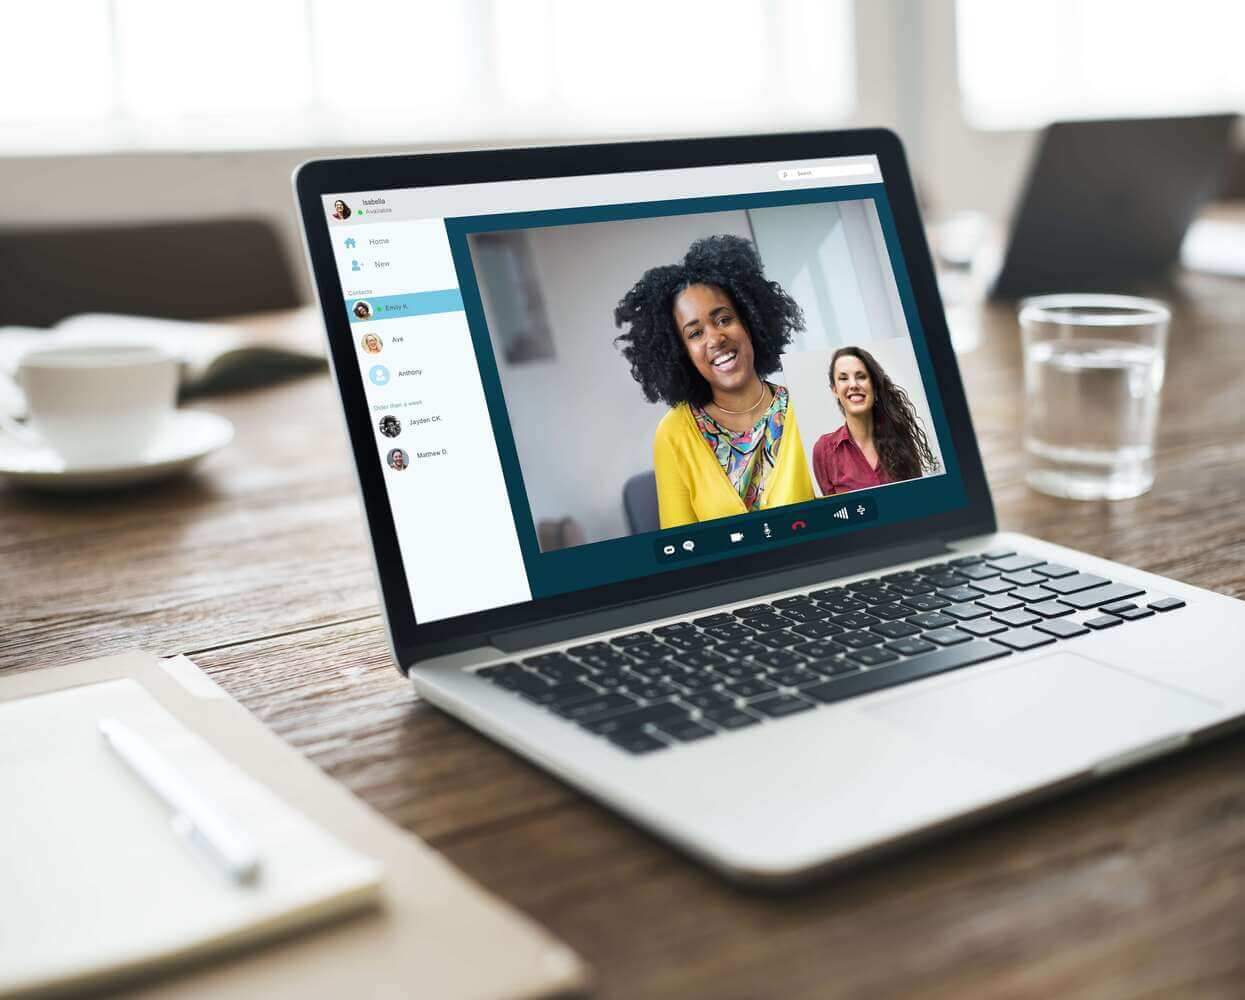 5 Easy Tips to Rock Your Webcam